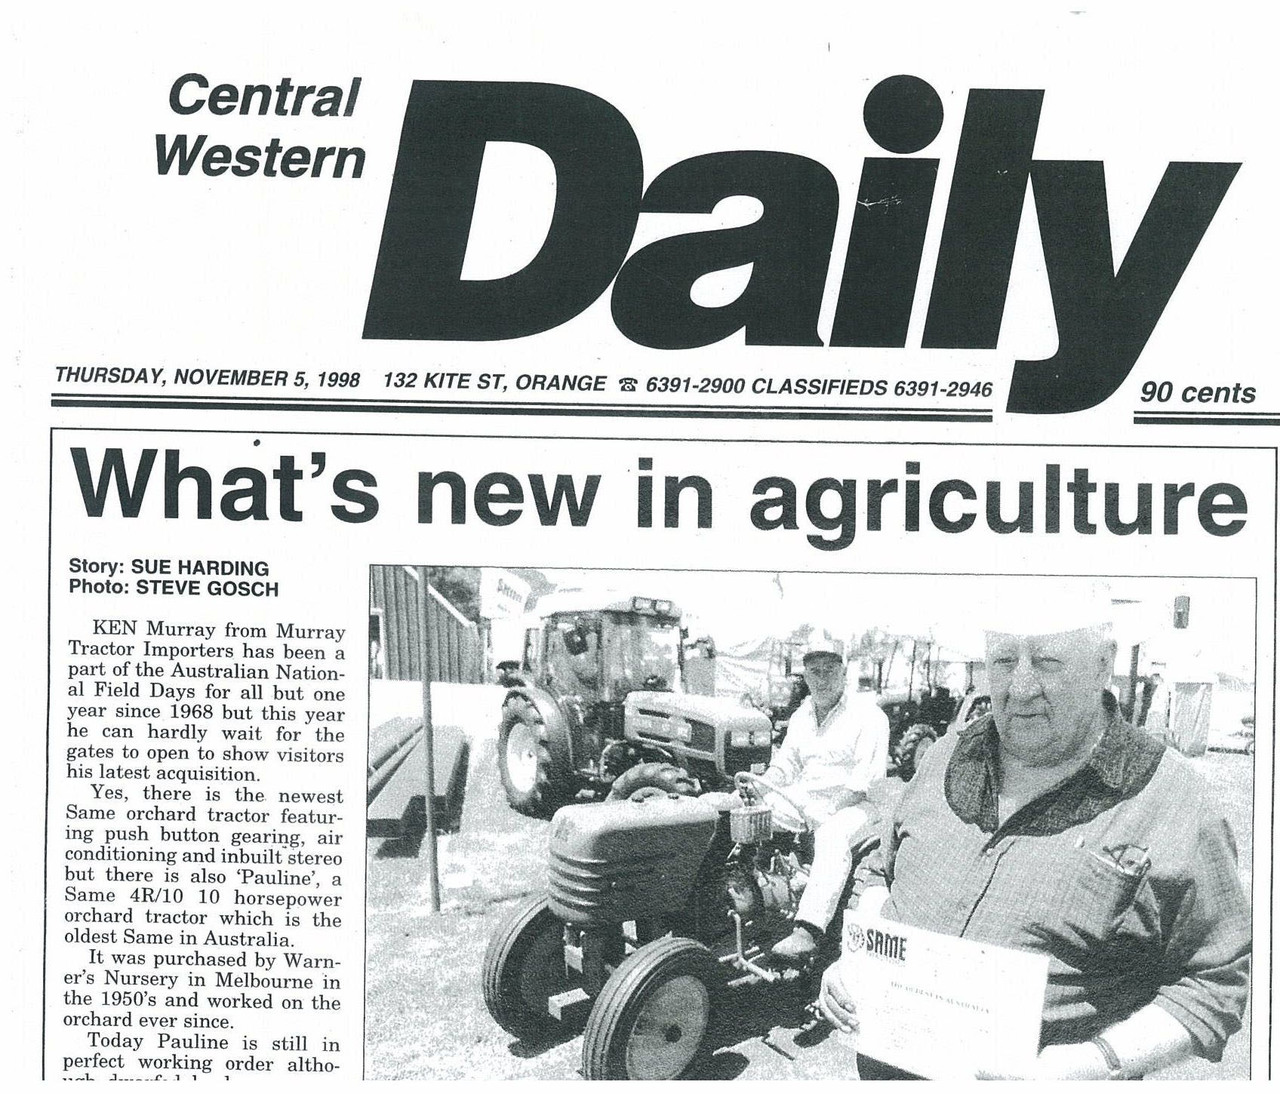 What's new in agriculture